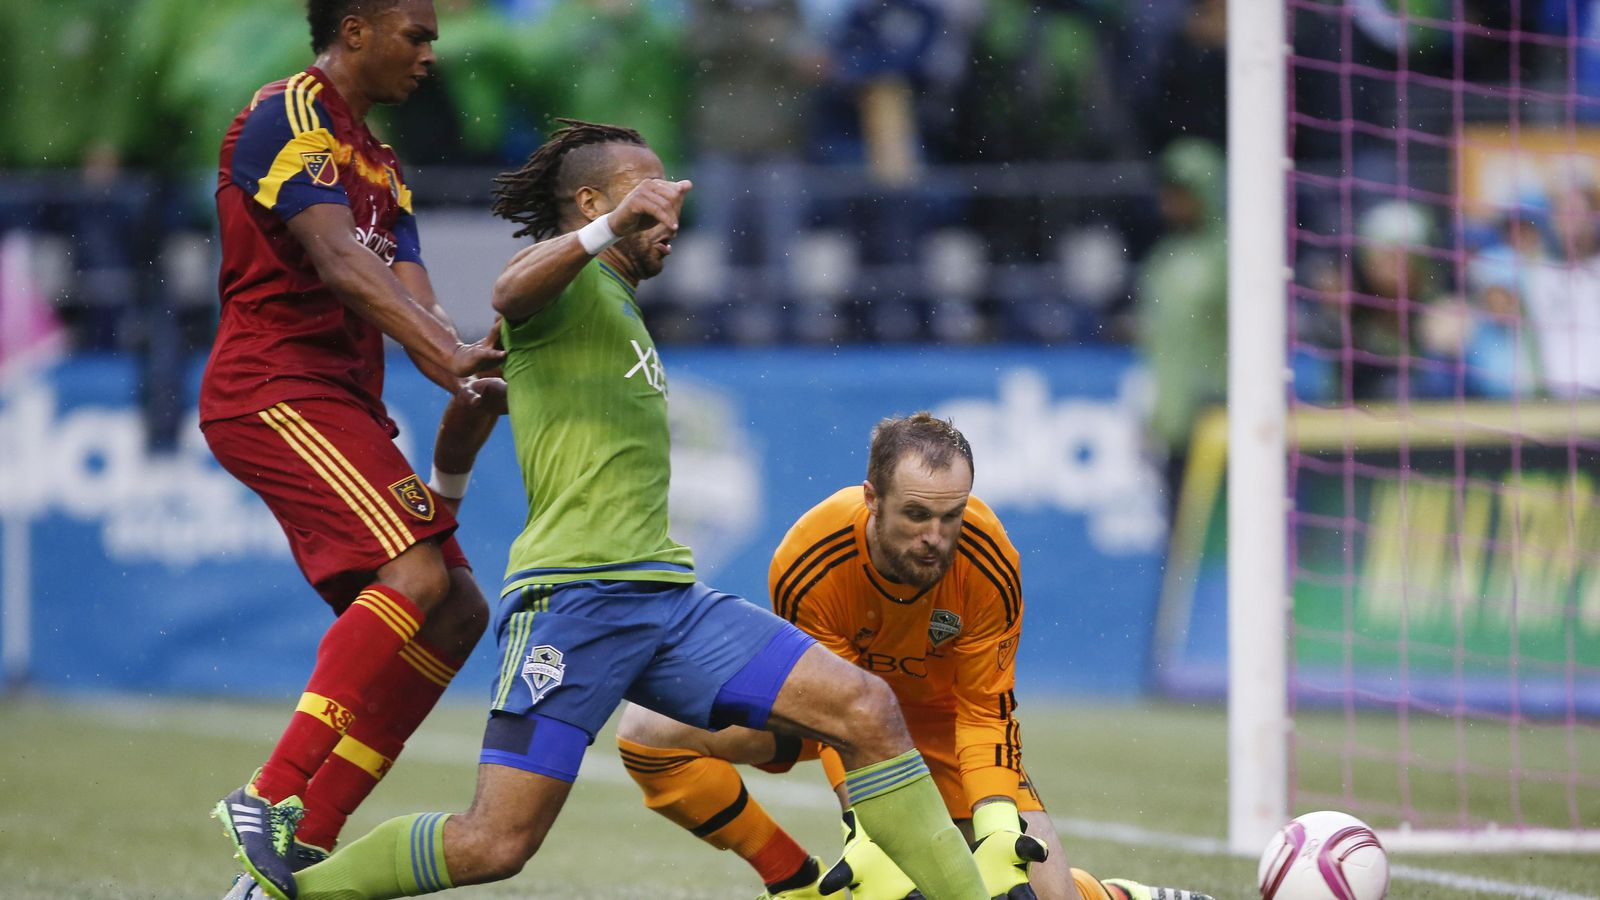 How to watch RSL vs. Seattle